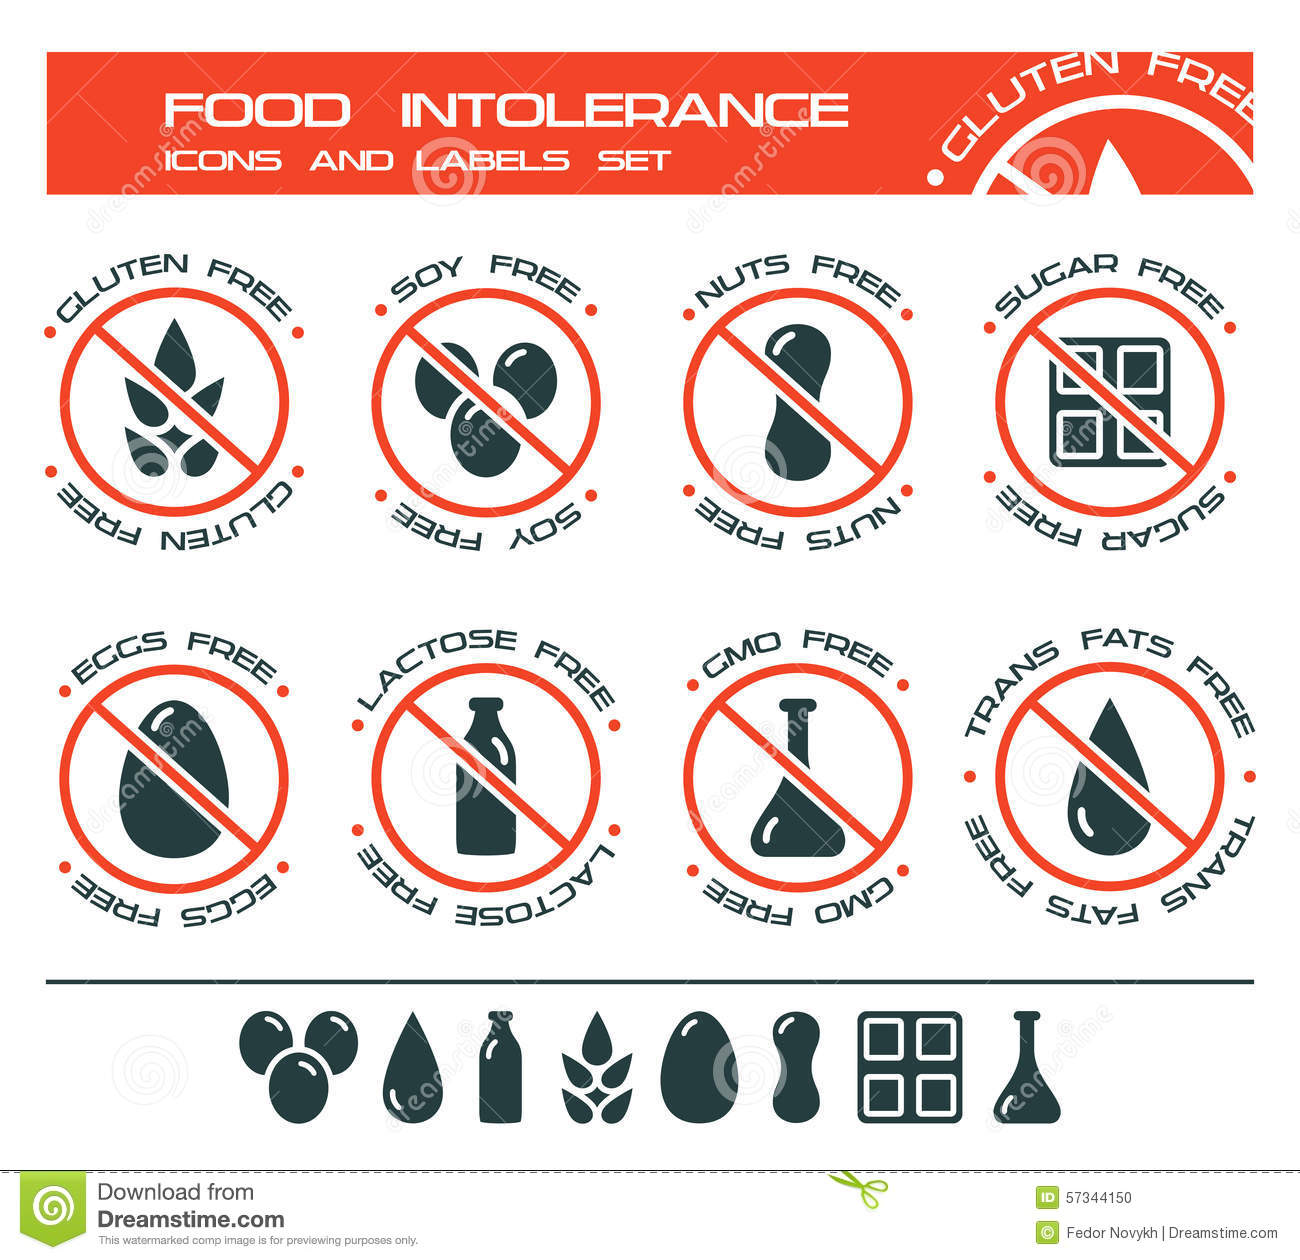 Food intolerance icons and labels set stock vector illustration of food intolerance icons and labels set biocorpaavc Gallery